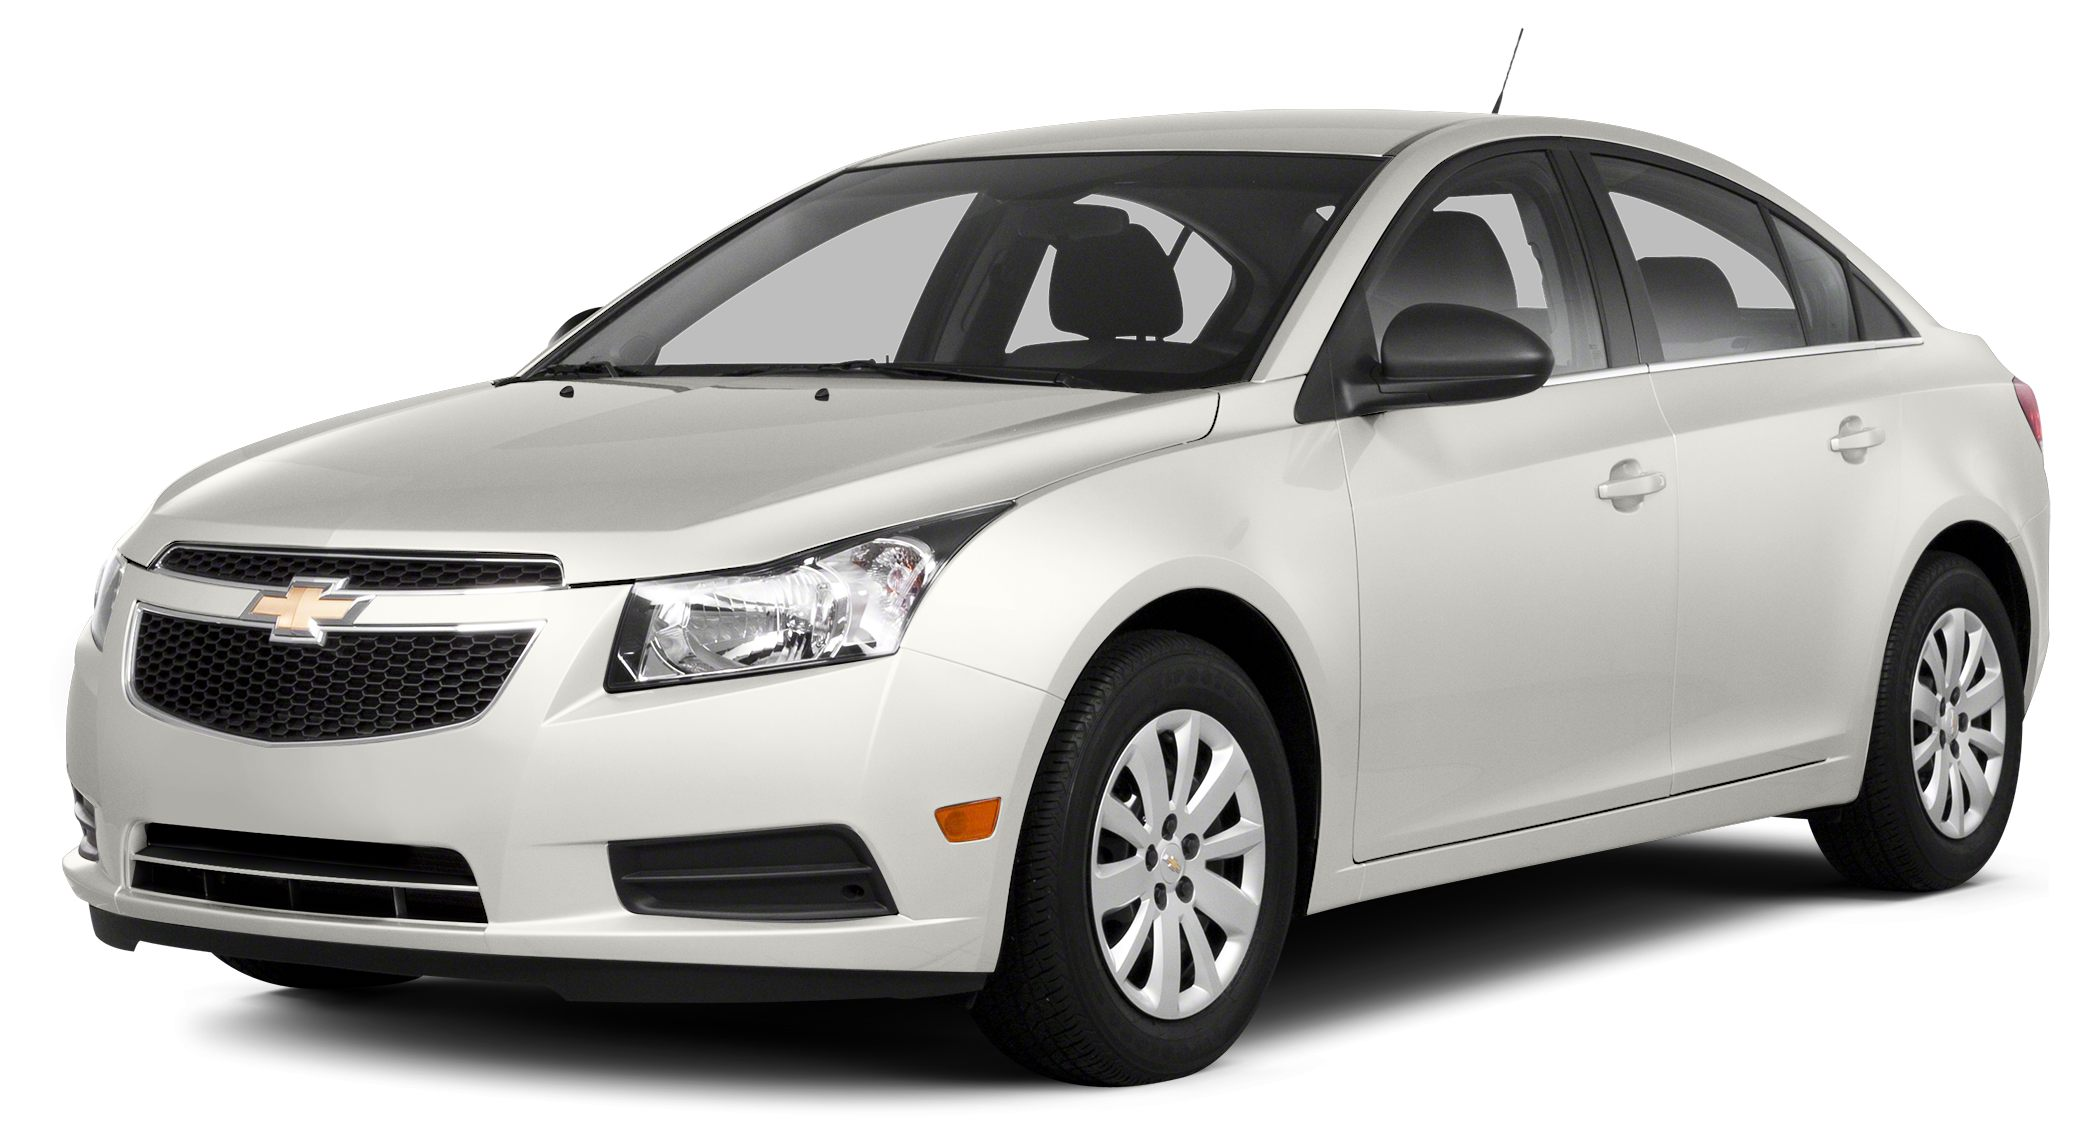 2013 Chevrolet Cruze LS REDUCED FROM 14000 500 below NADA Retail FUEL EFFICIENT 36 MPG Hwy